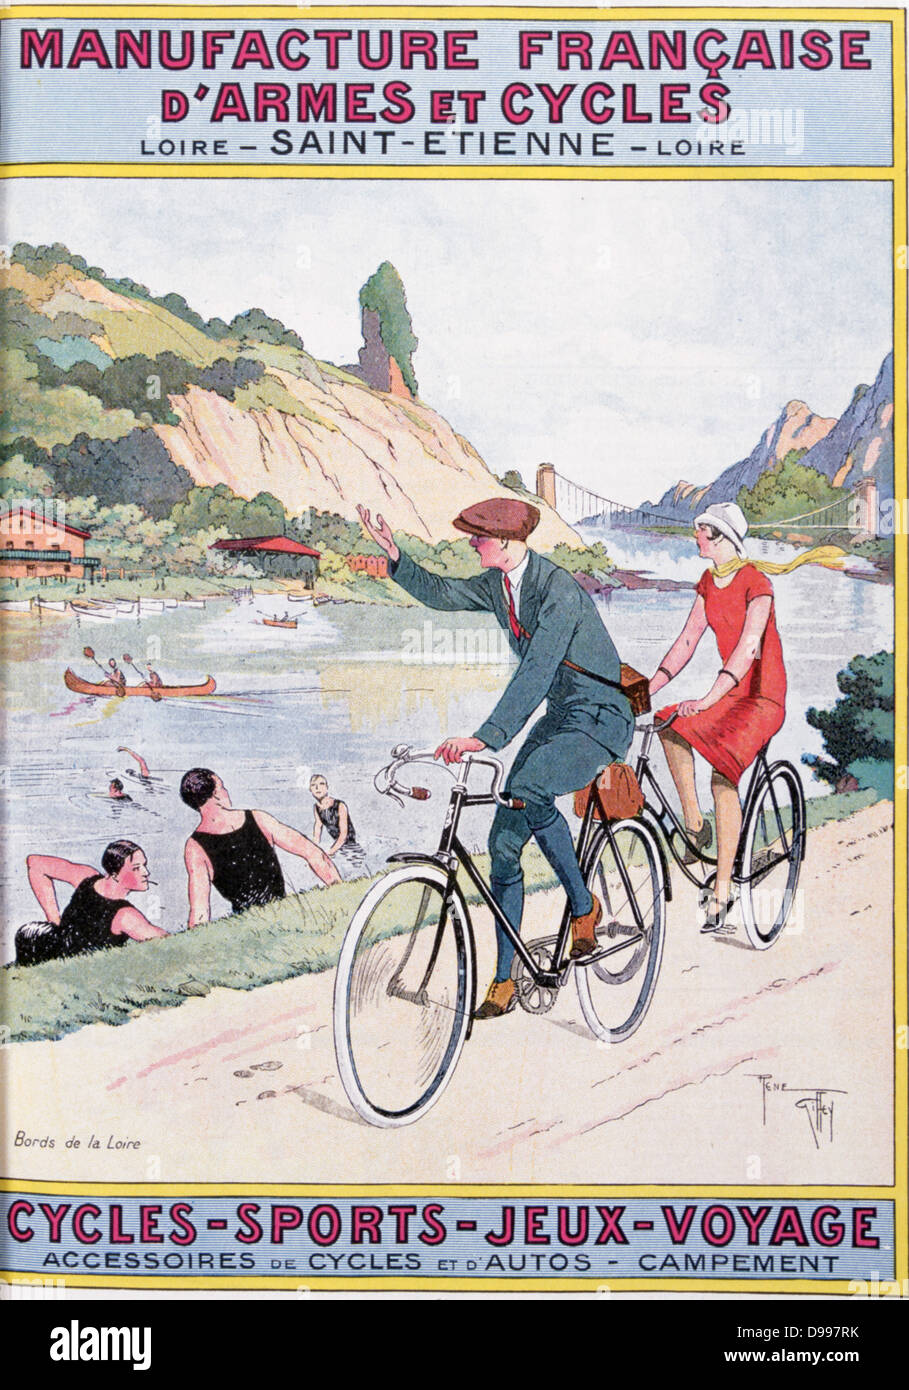 Cover of catalogue of Manufrance (Manufacture Francaise d'Armes et Cycles), Saint Etienne, c1920. Man and woman - Stock Image